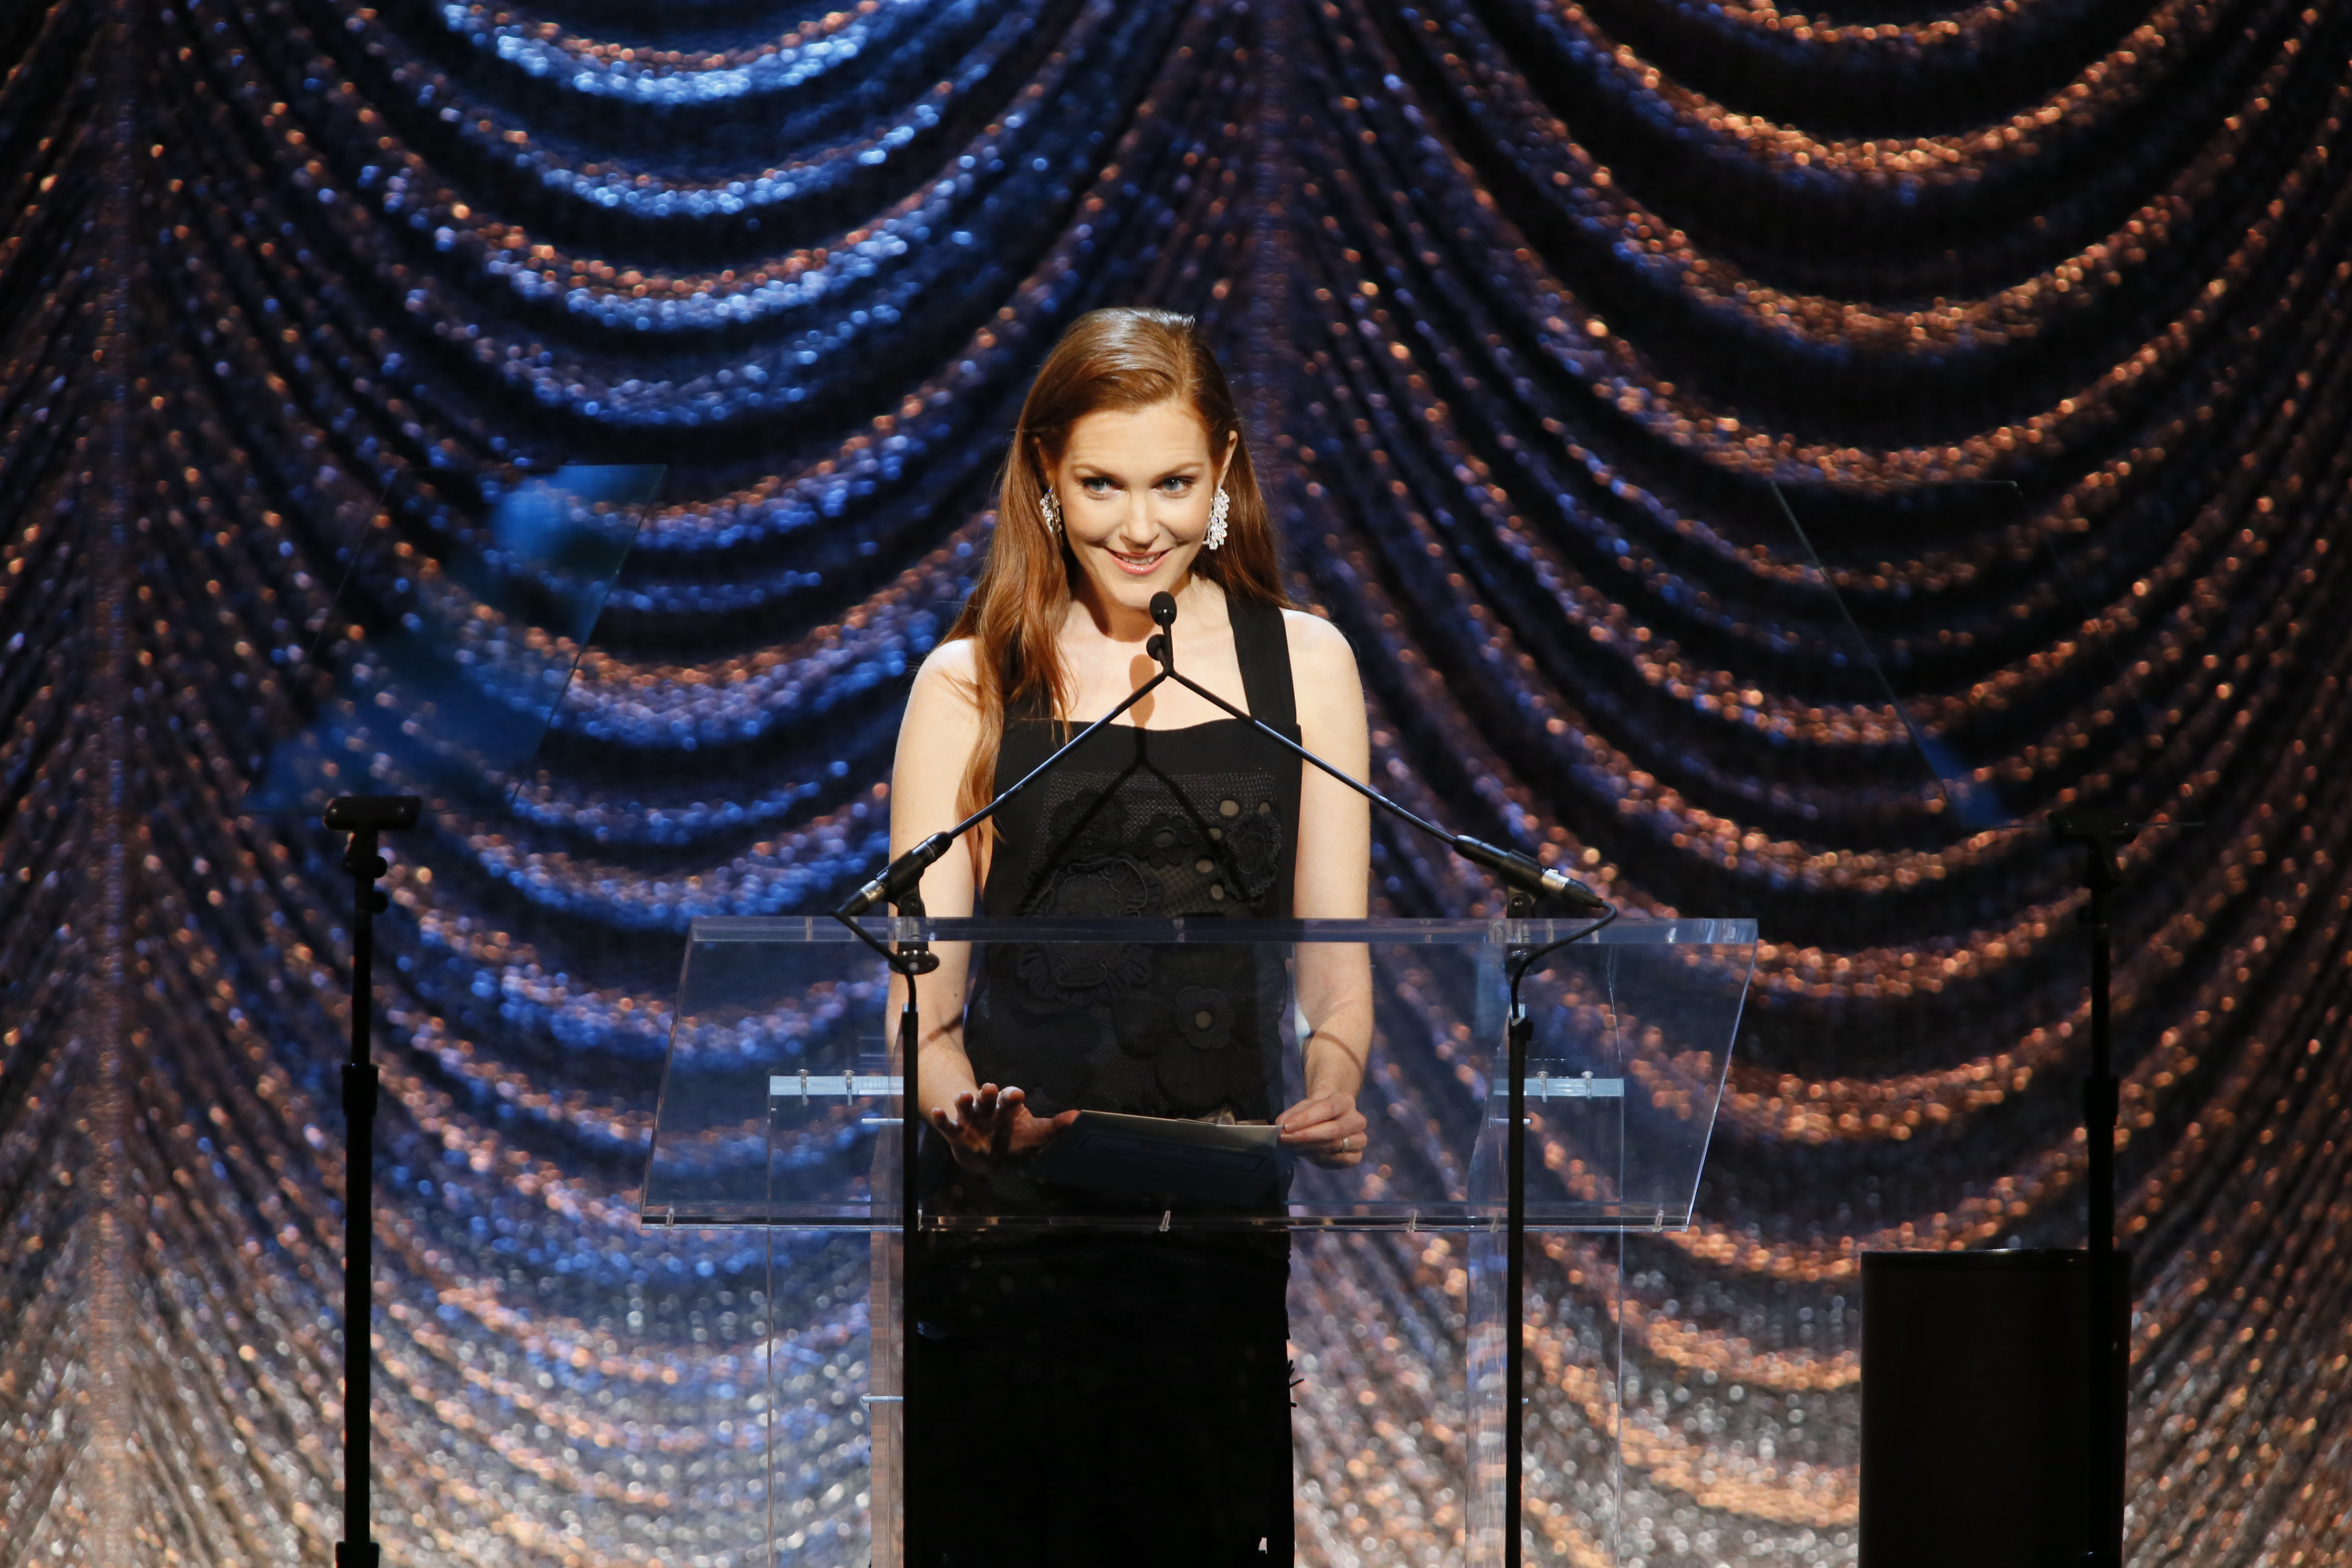 Presenter Darby Stanchfield announces the winner for Regular Series for Non-Commercial Television.